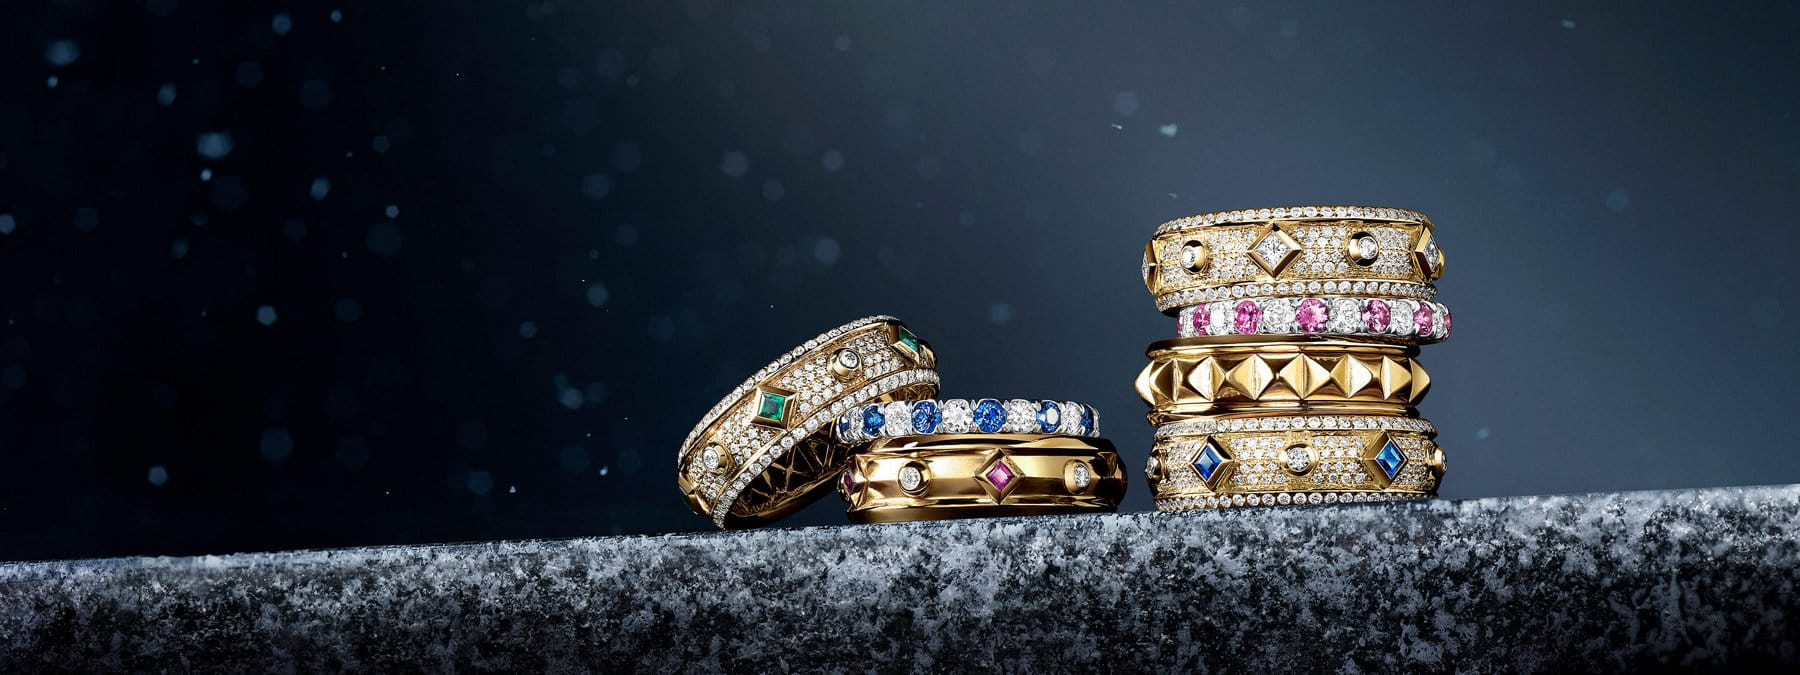 A color photograph shows two vertical stacks of David Yurman band rings from the Renaissance and DY Eden collections. The women's jewelry is crafted from 18K yellow gold with or without white diamonds, emeralds, blue or pink sapphires, or rubies, and photographed atop a snow-dusted stone ledge at night.